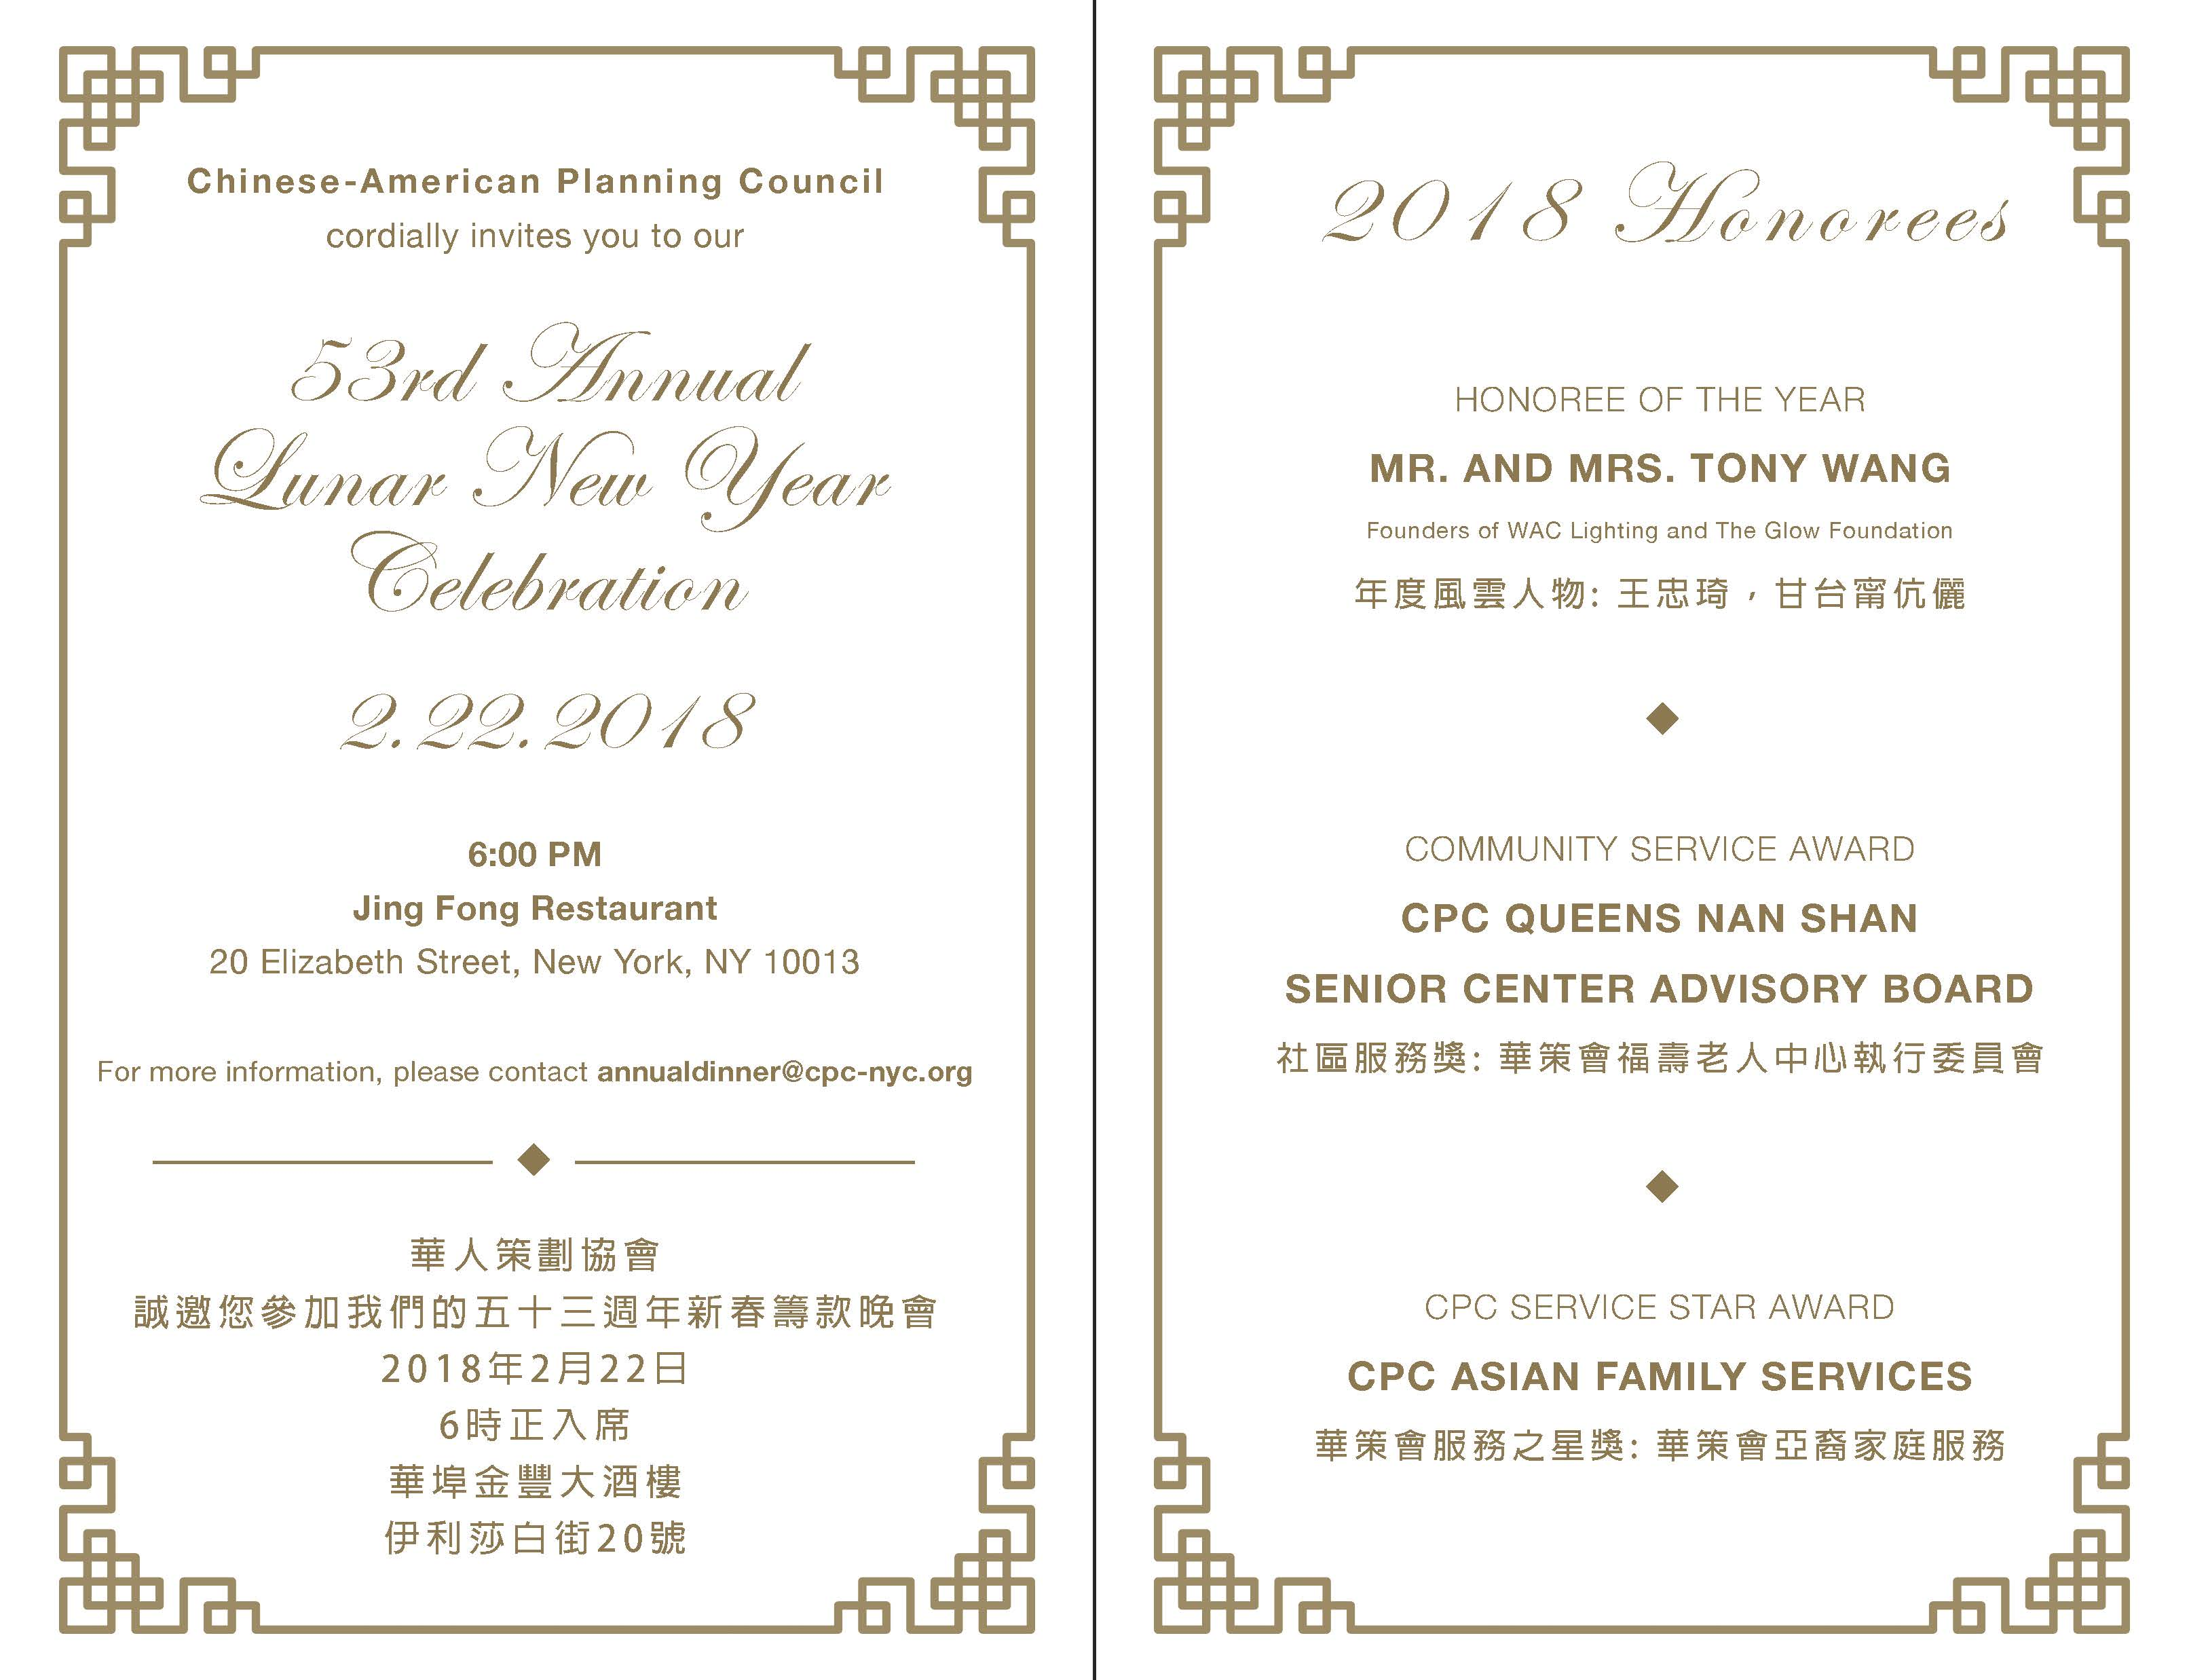 cpc lunar new year celebration 2018 invitation back